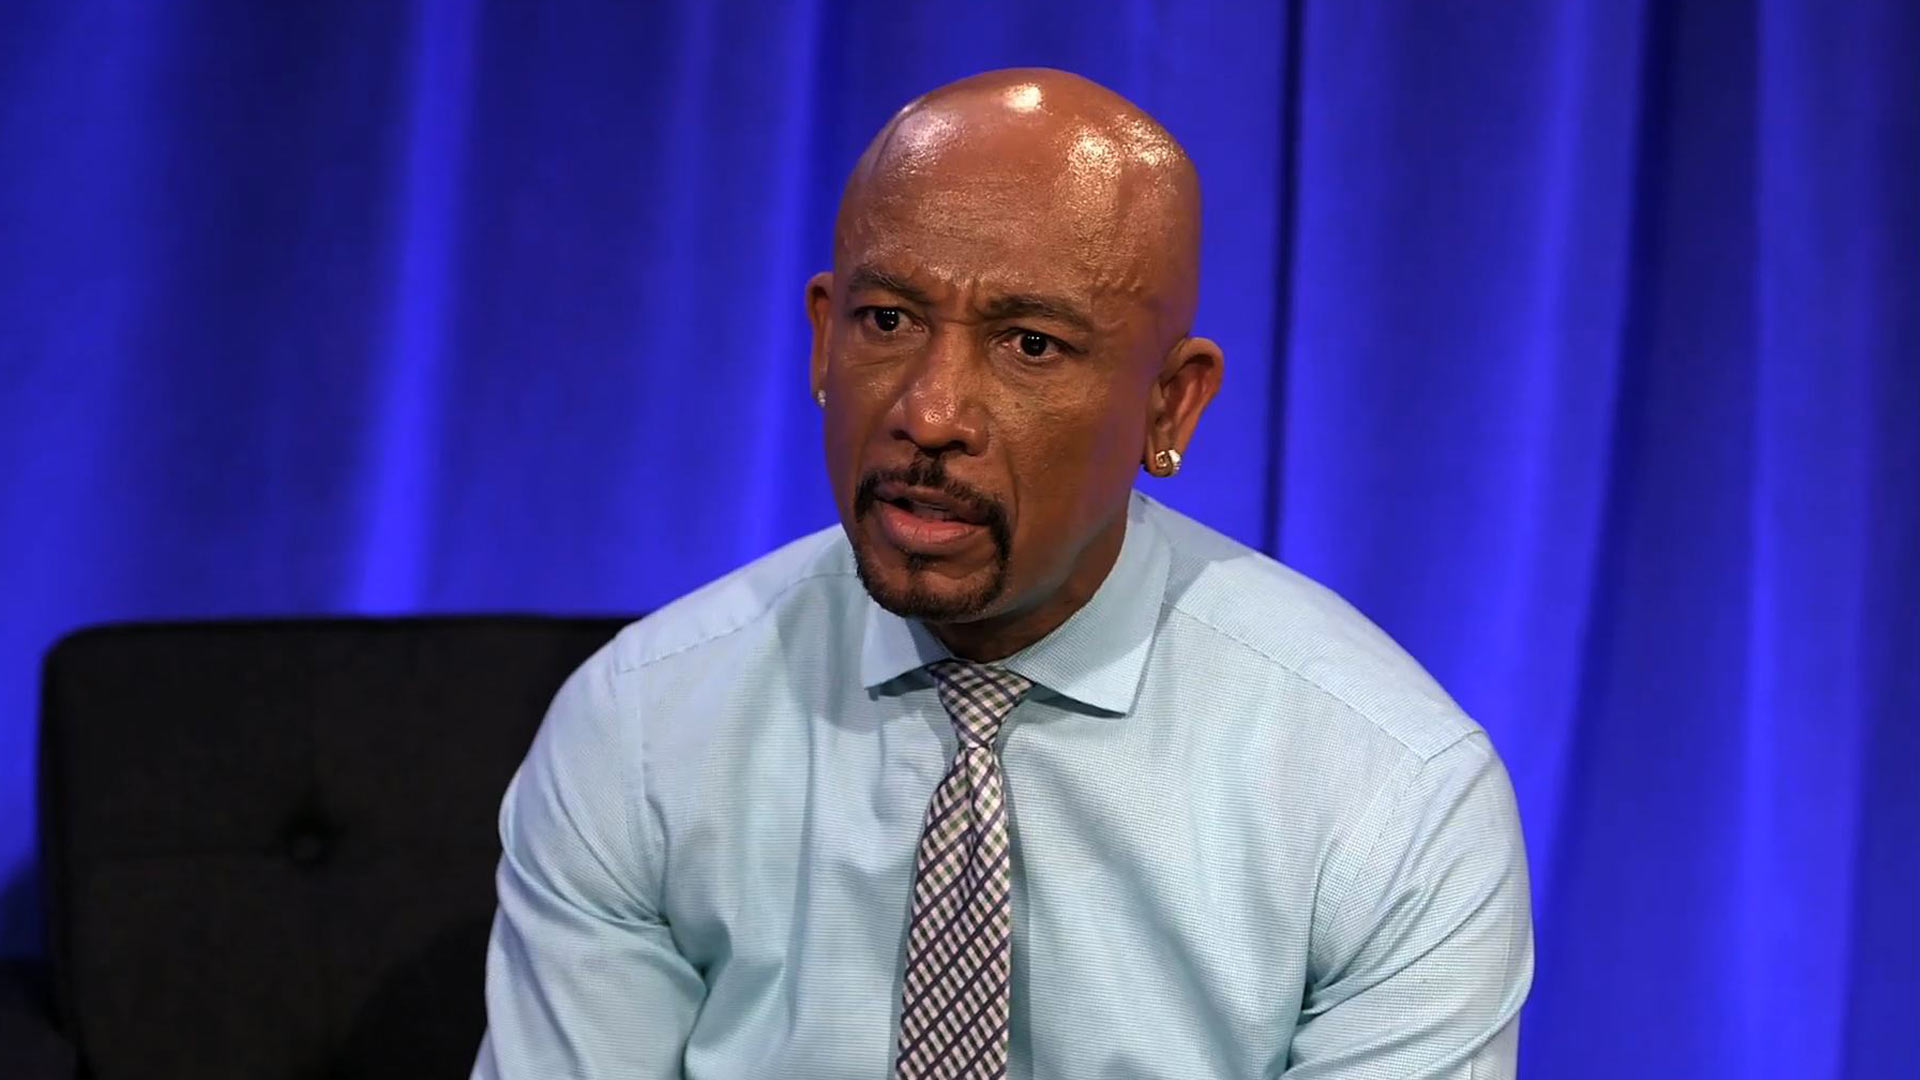 Montel Williams launches medical marijuana company